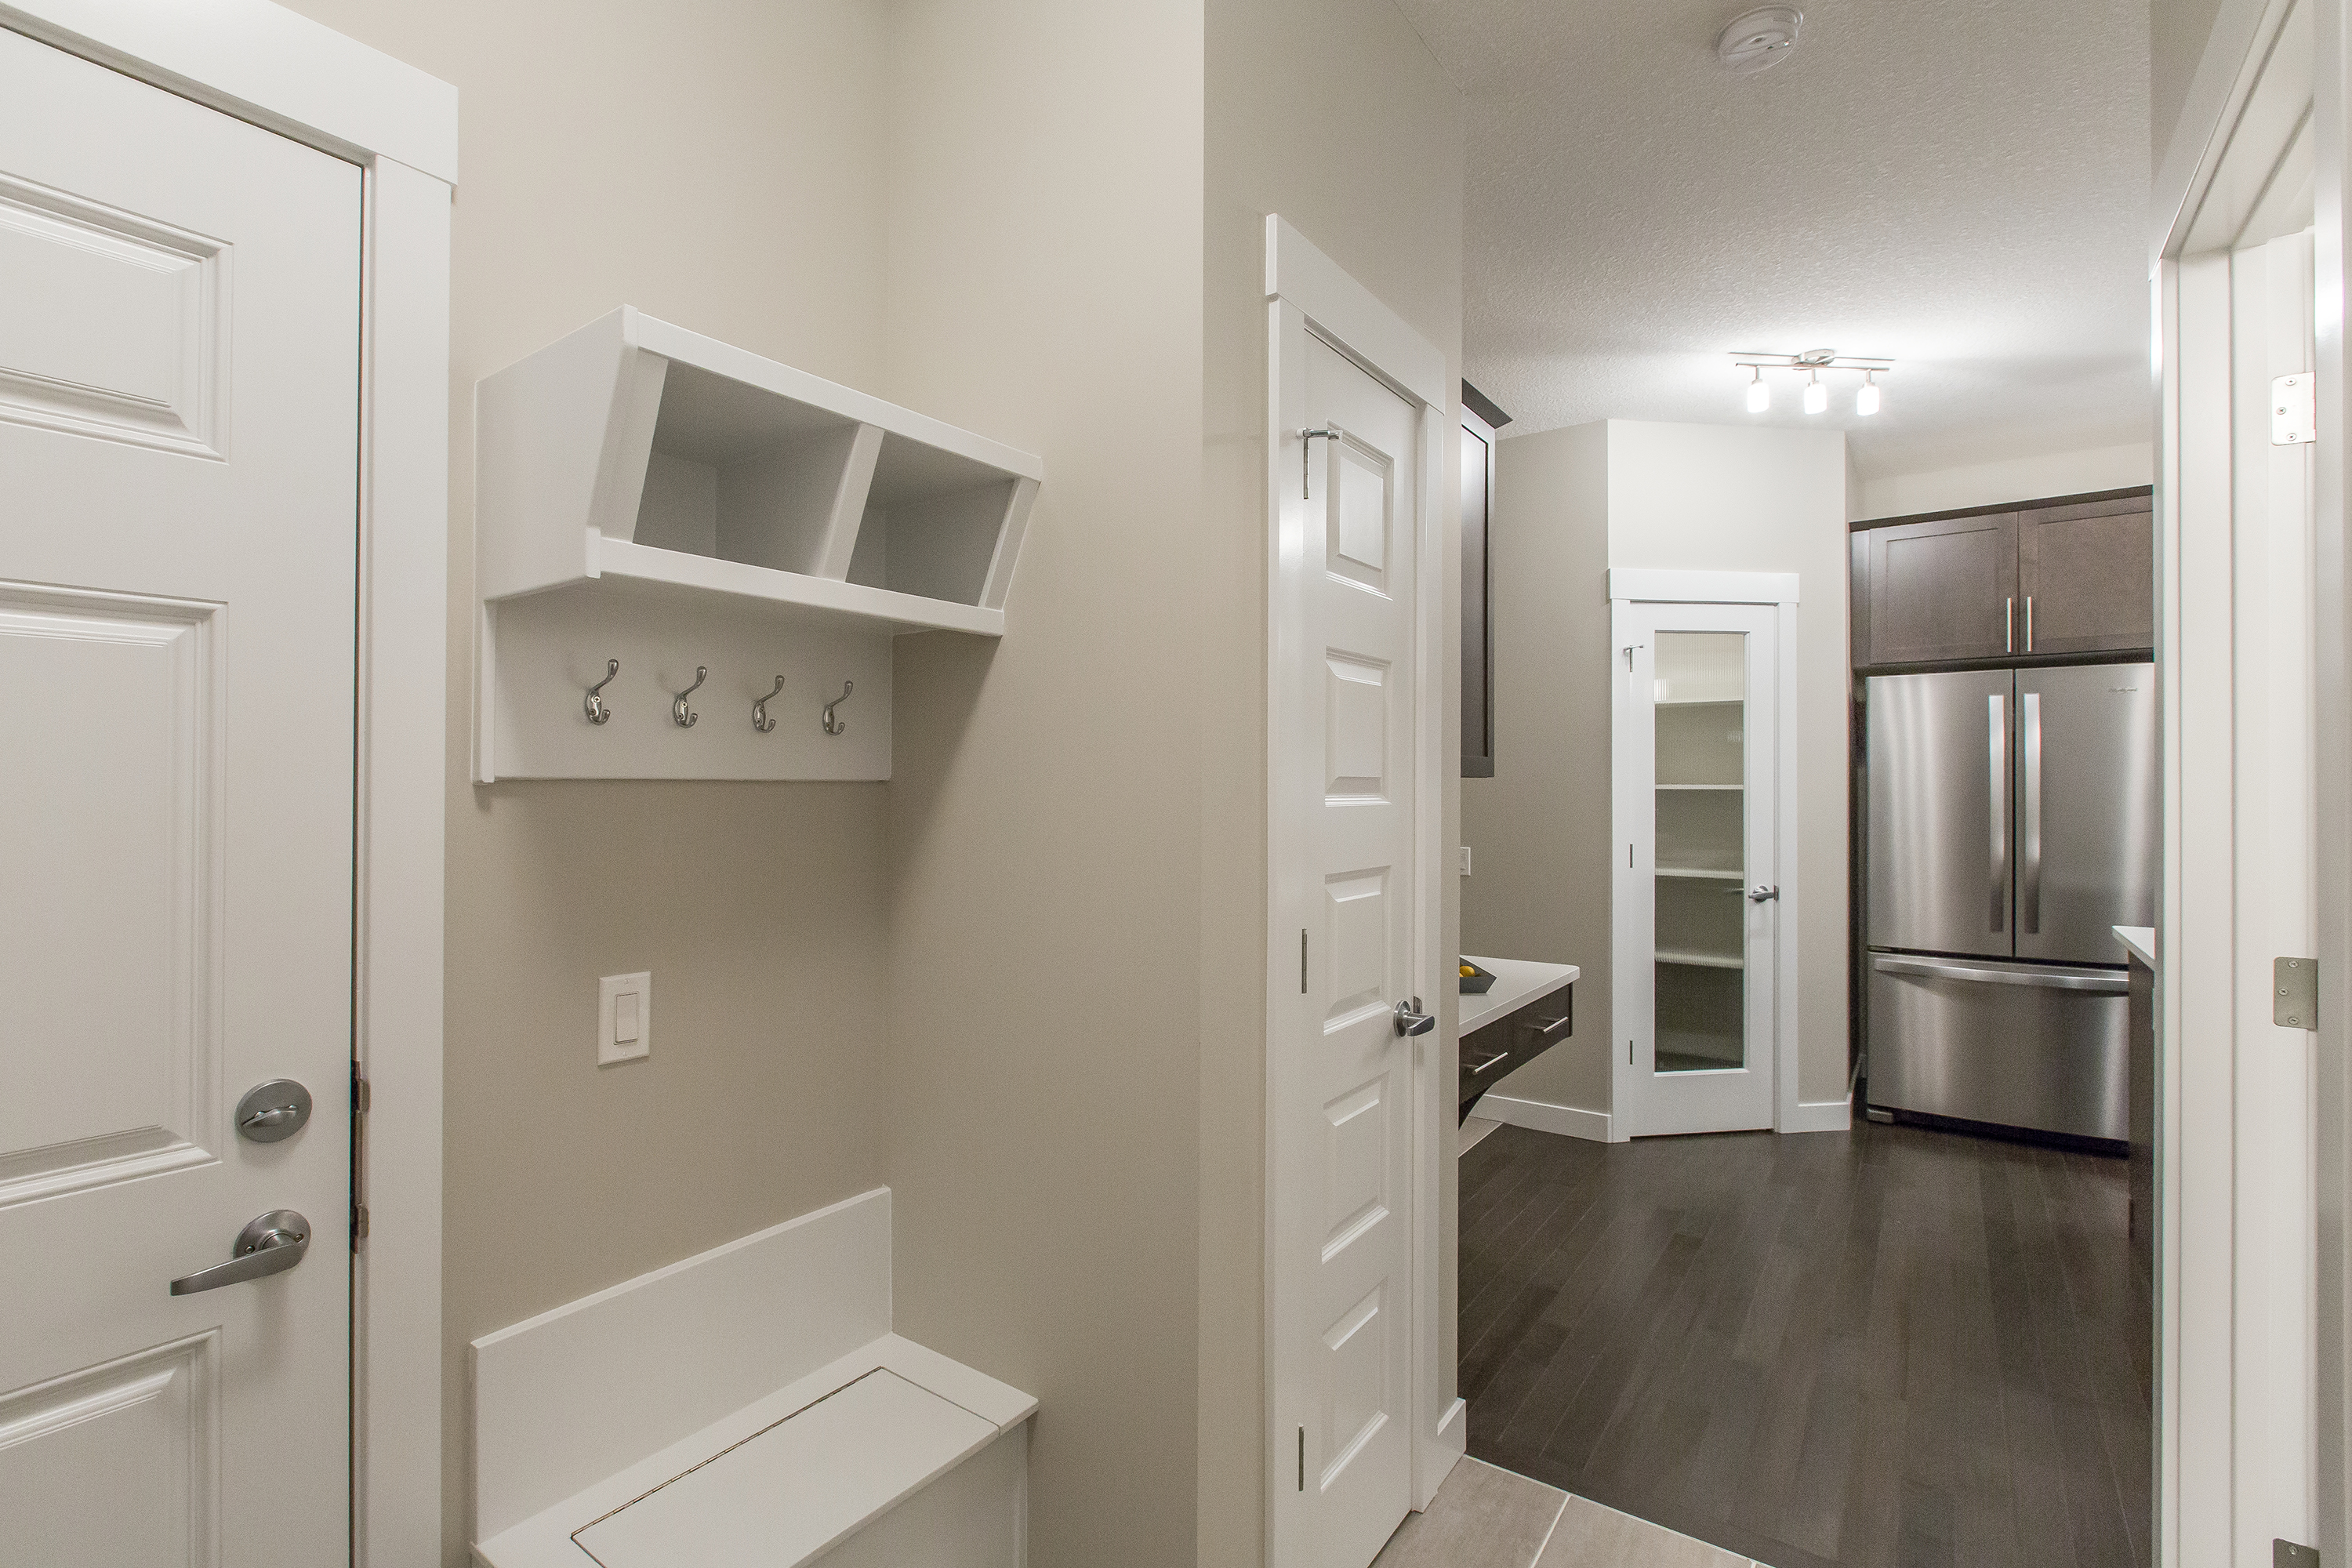 Mudroom and Kitchen of new home built by City Homes Master Builder